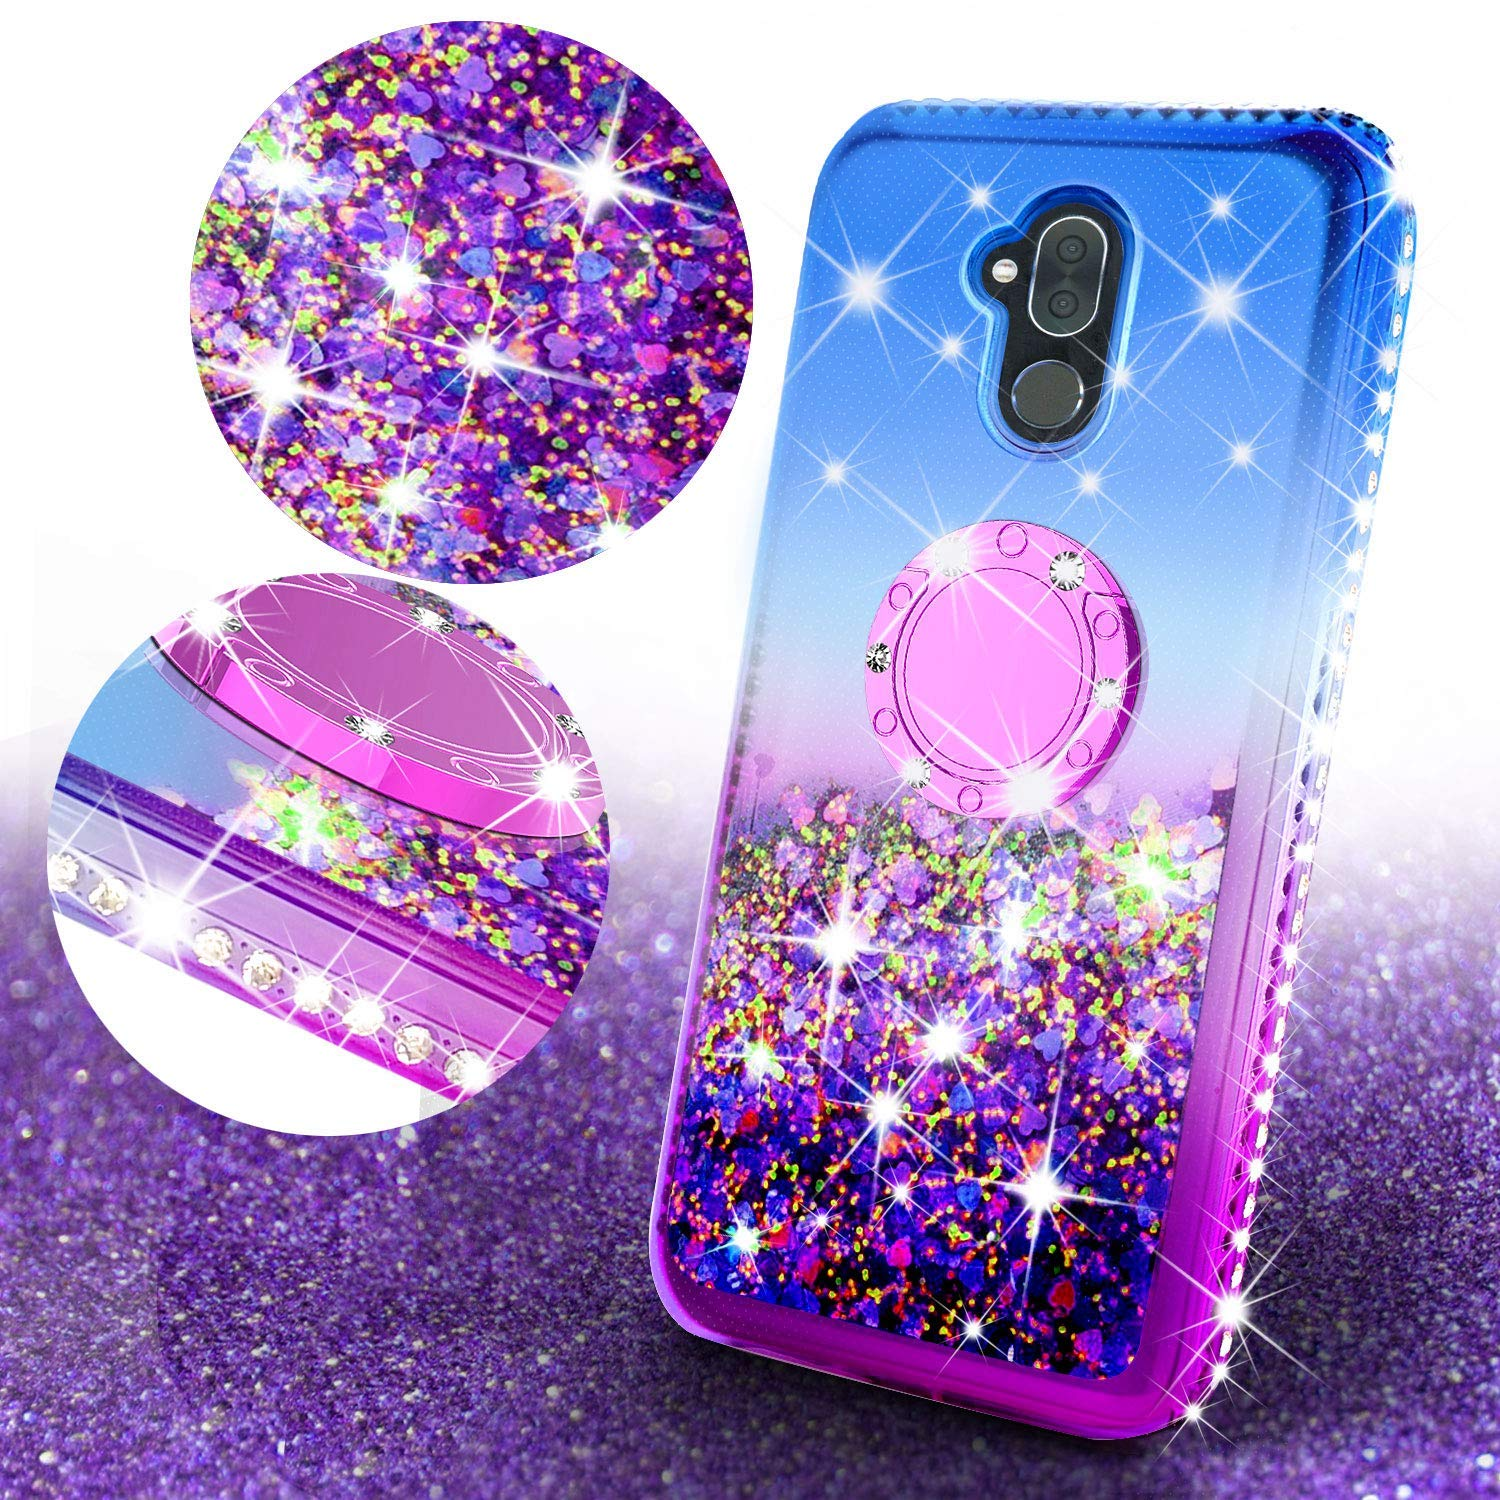 Alcatel 7 / Revvl Plus 2 Case,Liquid Glitter Cute Phone Case Girls Kickstand,Bling Diamond Rhinestone Bumper Ring Stand Sparkly Clear Soft Protective for Girl Women (Purple)